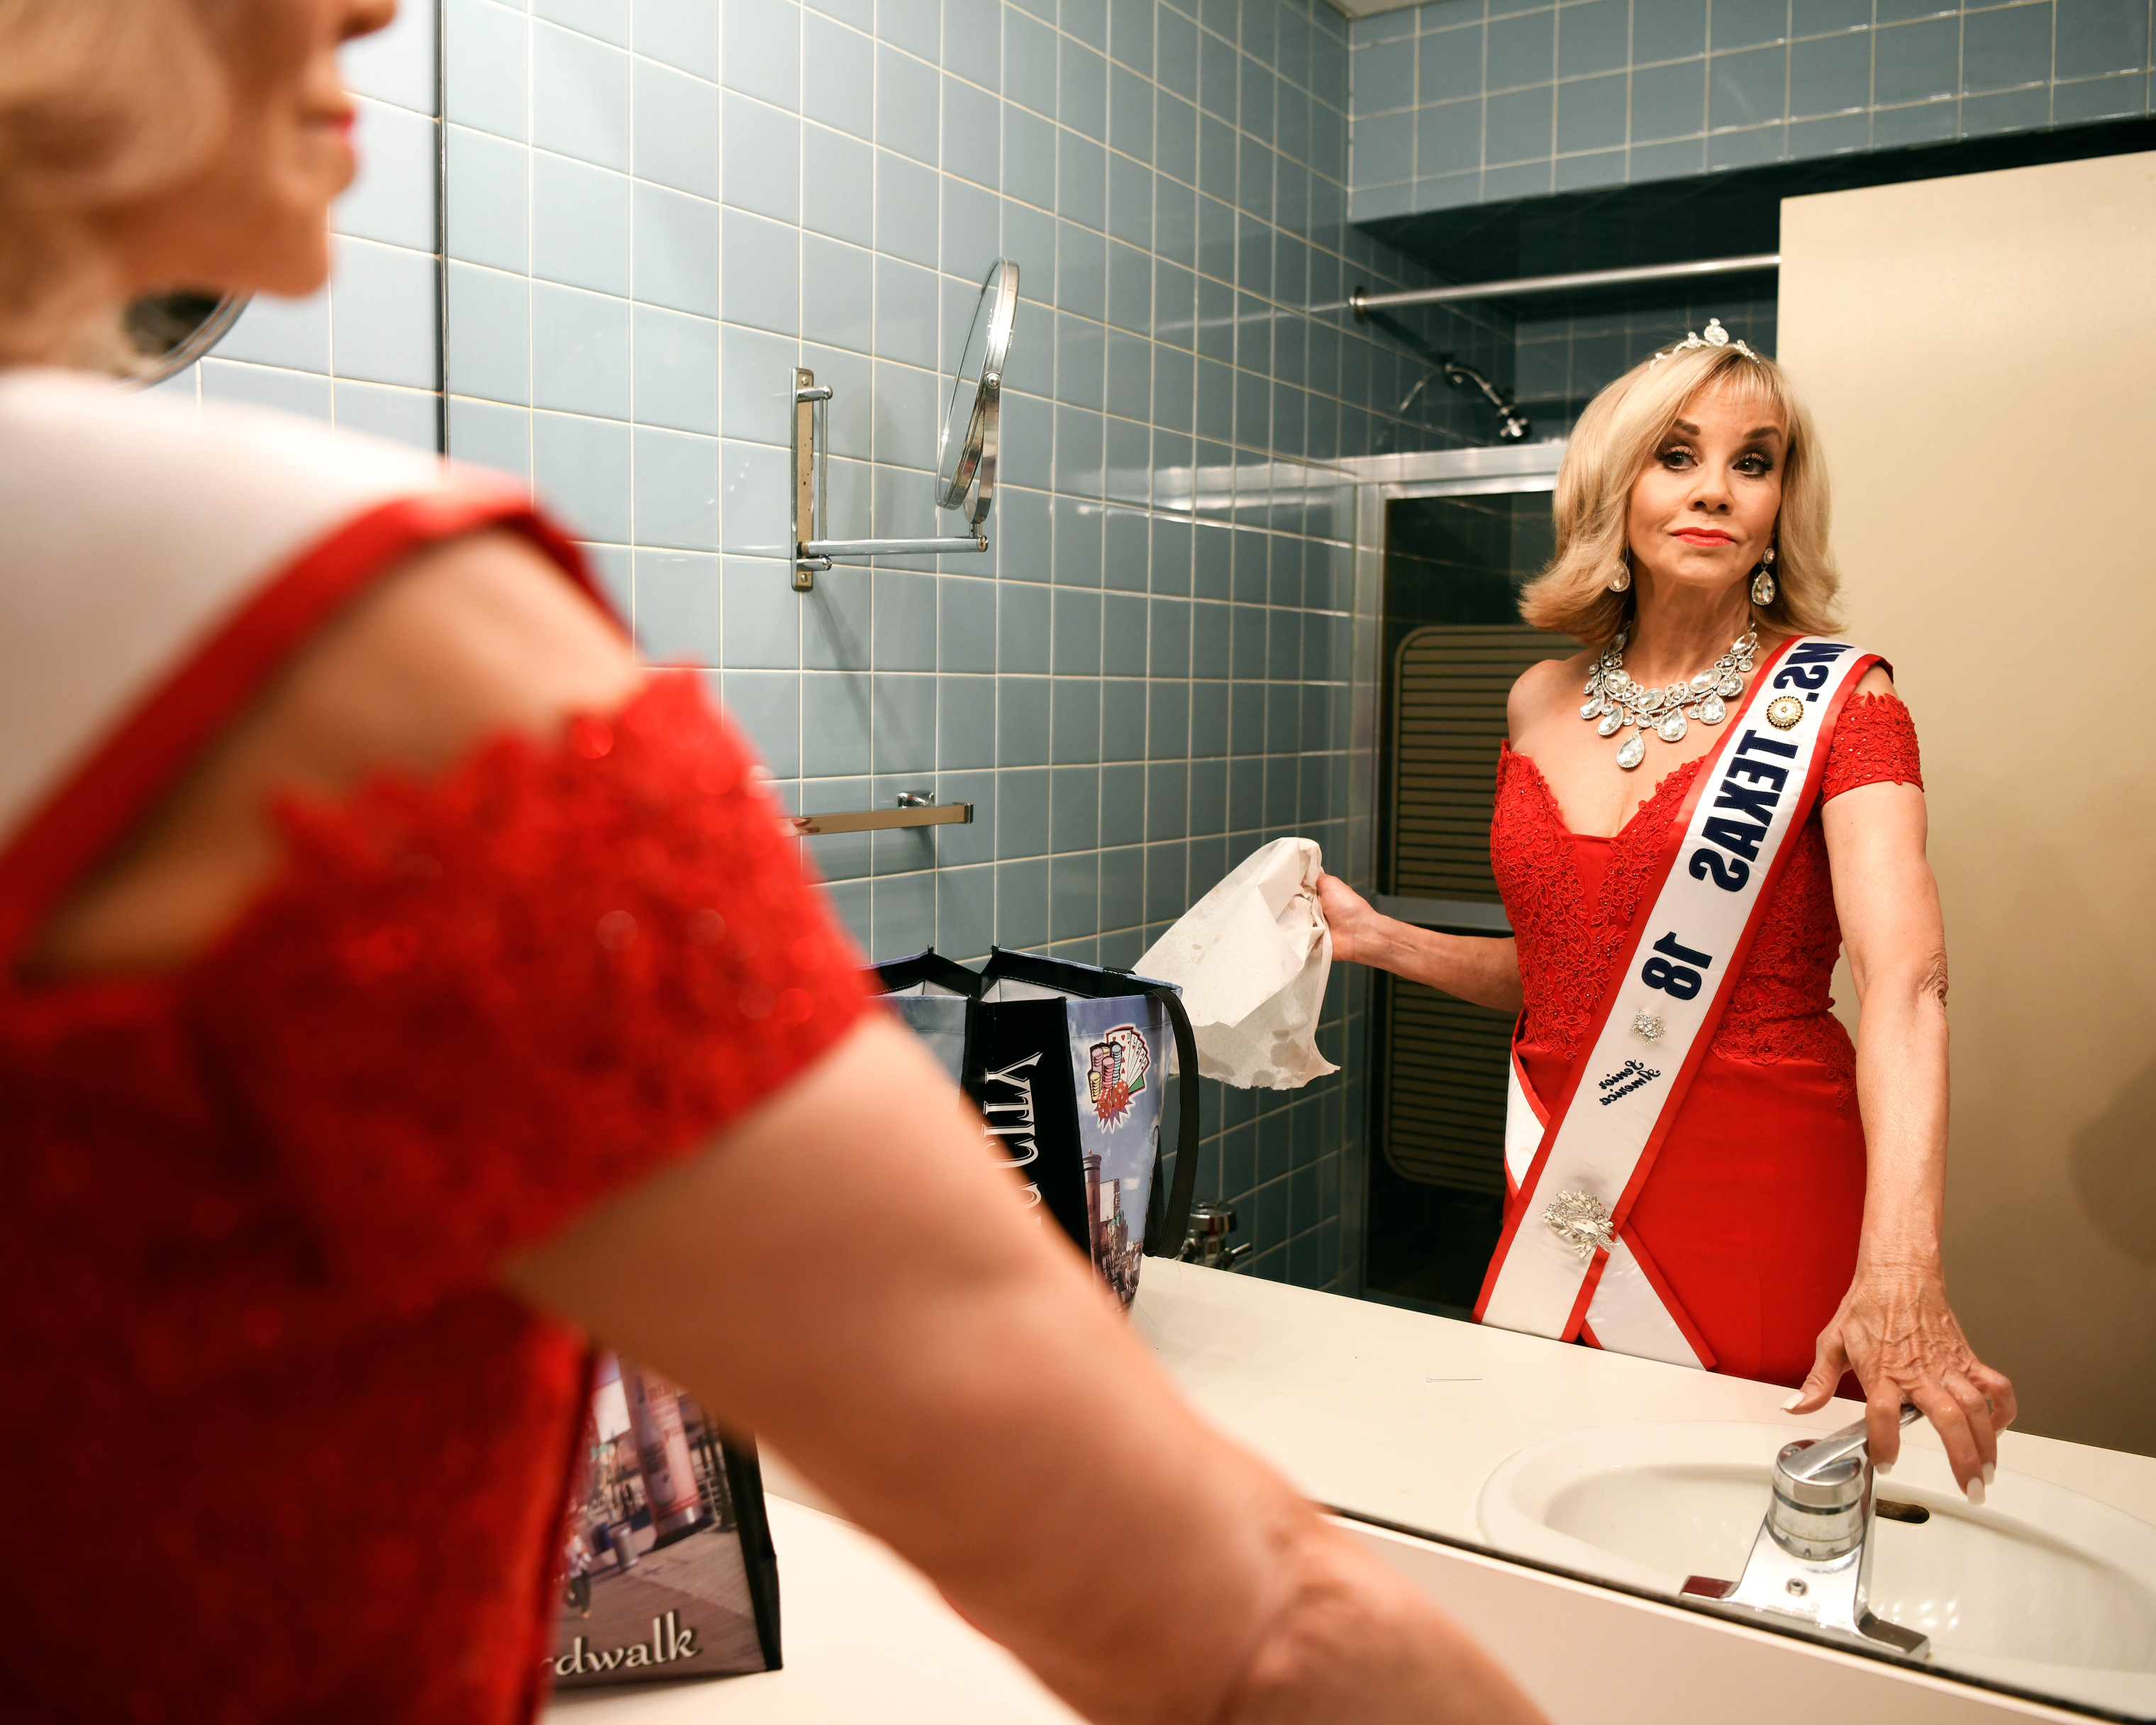 Sherry Dodson, Ms. Texas, prepares before the Ms. Senior America Pageant finale on Oct. 18, 2018.